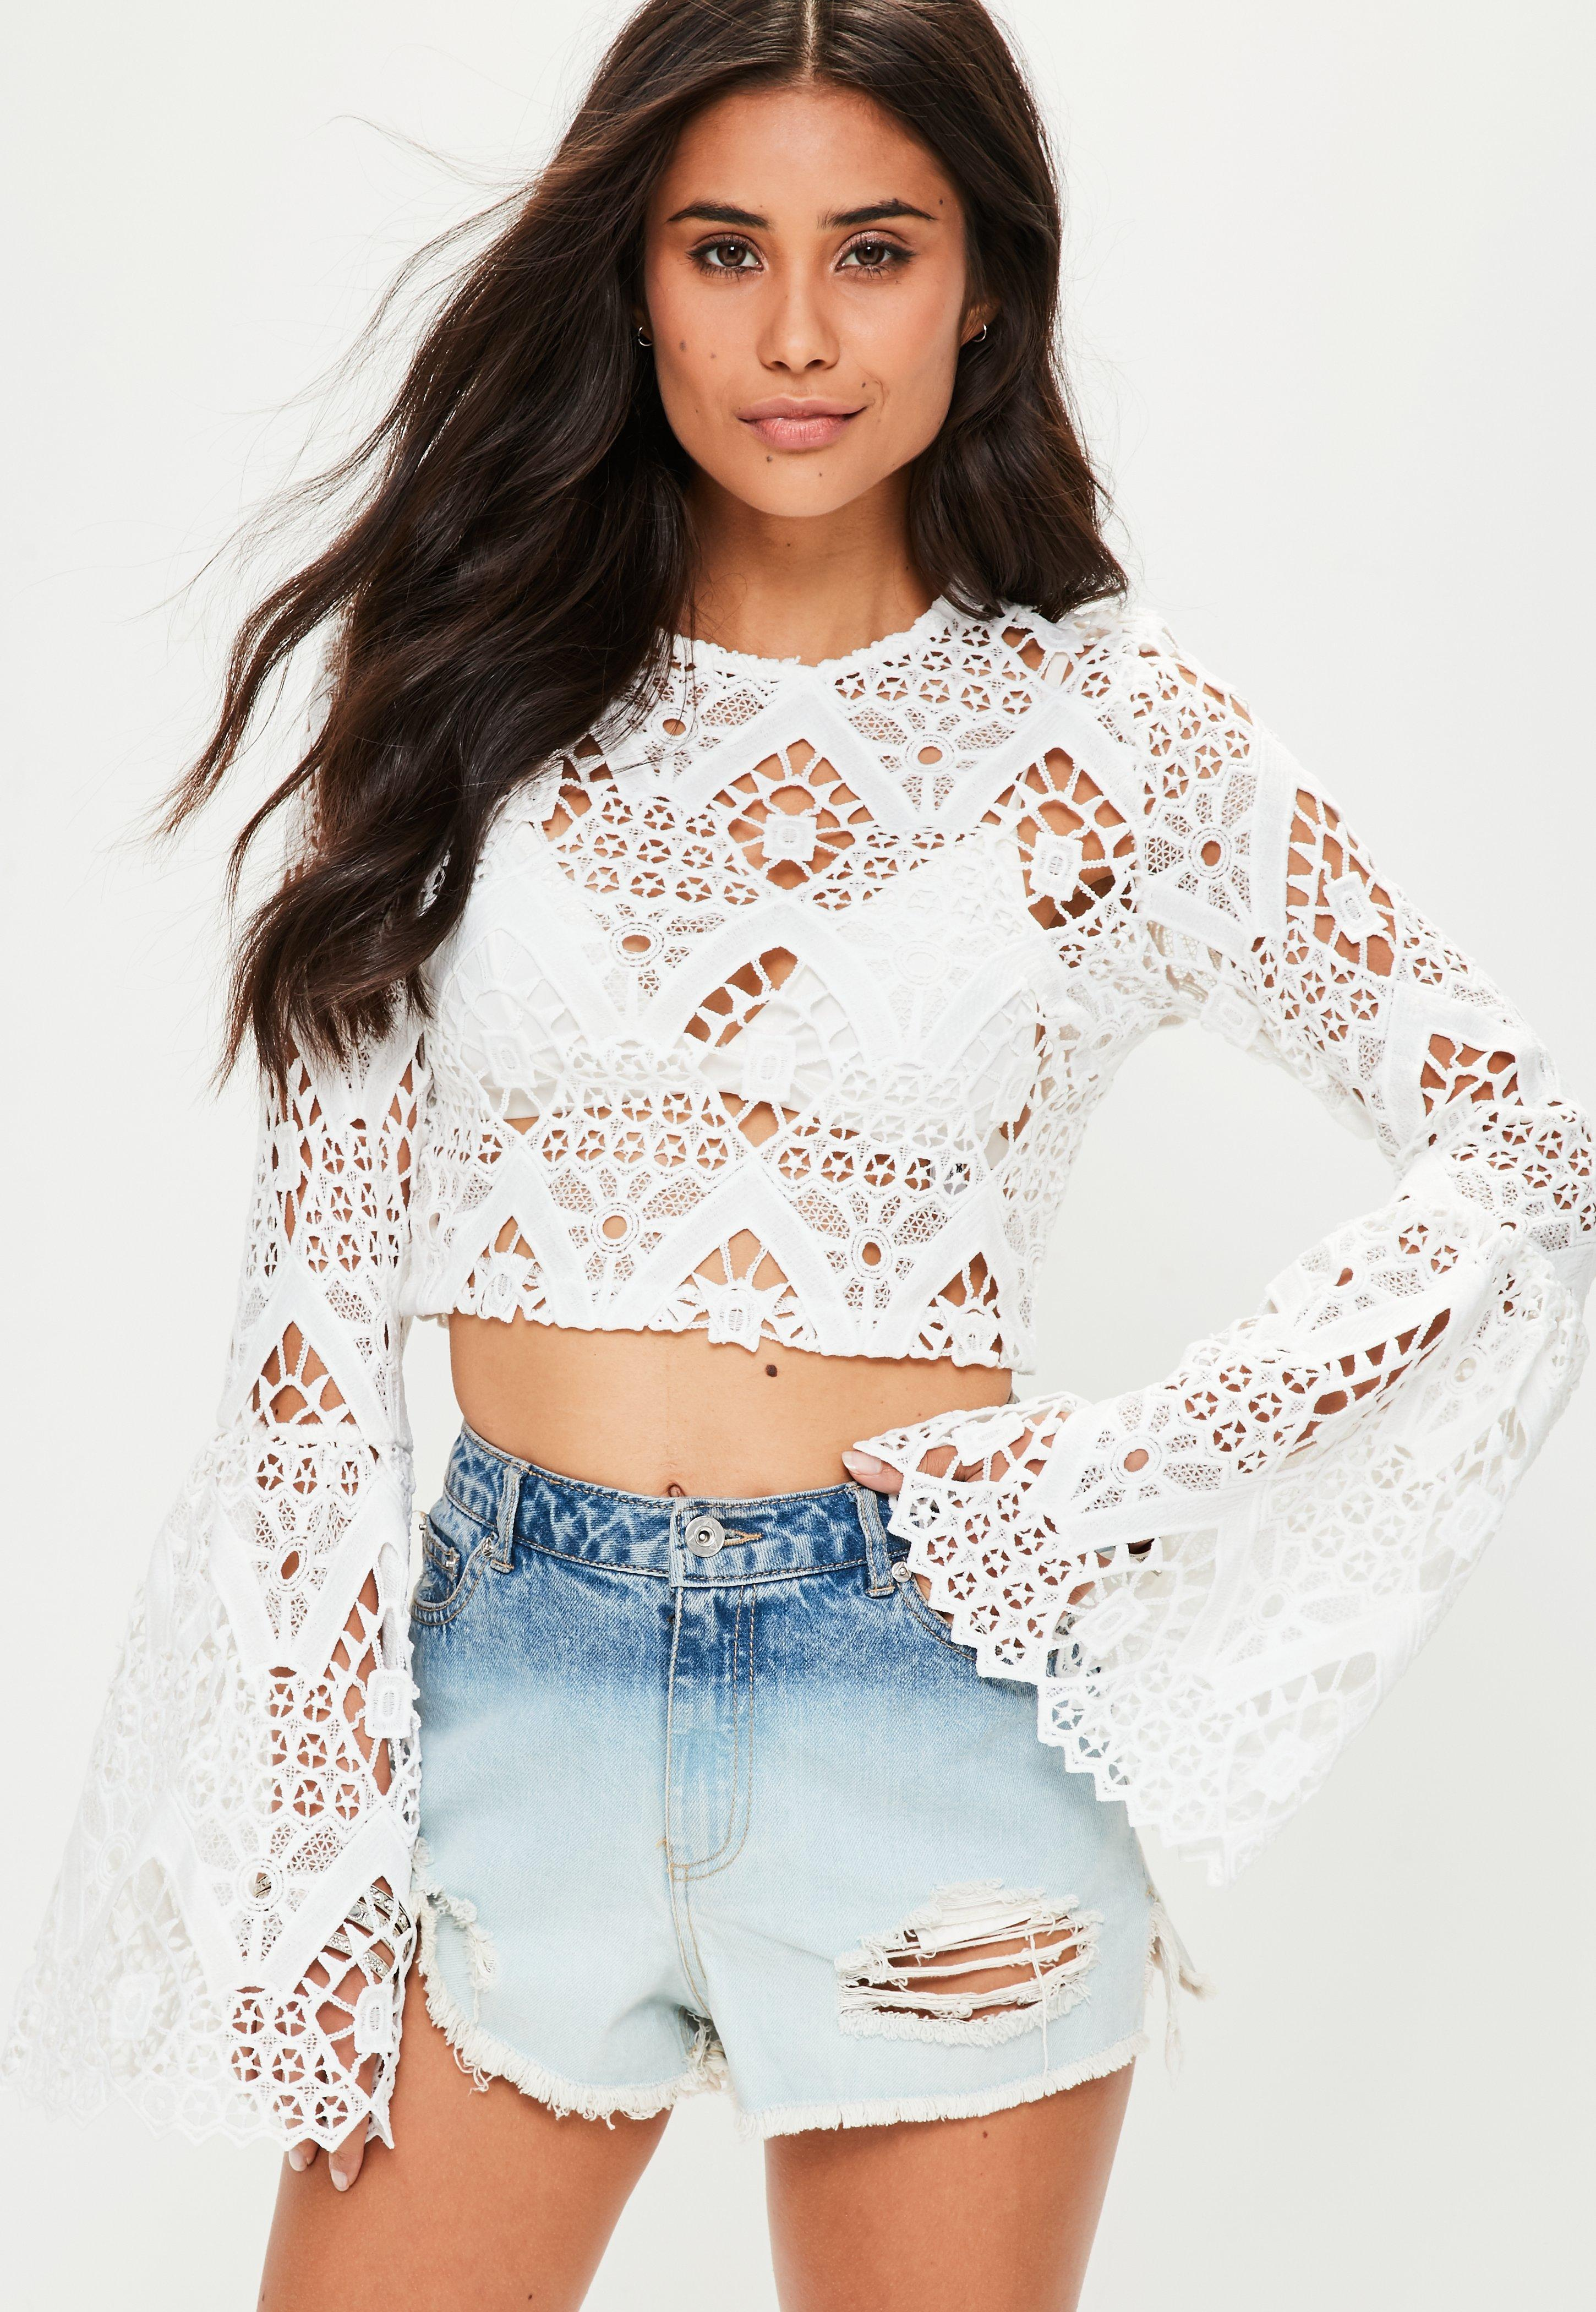 187fd6ae80c983 Lyst - Missguided White Lace Flare Sleeve Crop Top in White